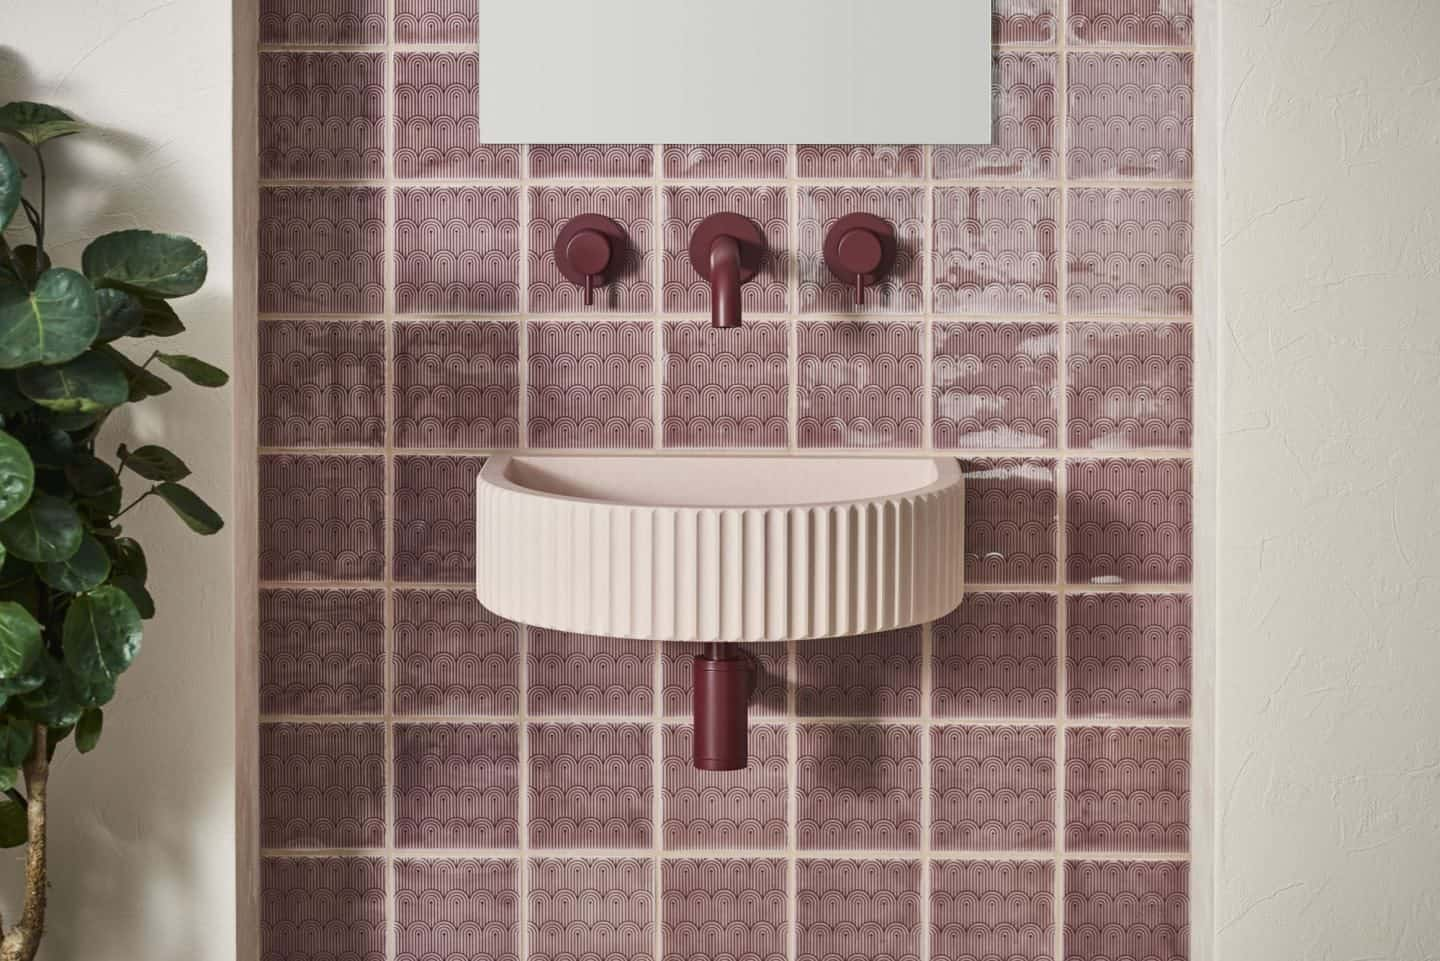 Original Style and 2LG Deco Tayberry Tile of the Year 2020 provide the background for this beautiful blush concrete basin from Kast.